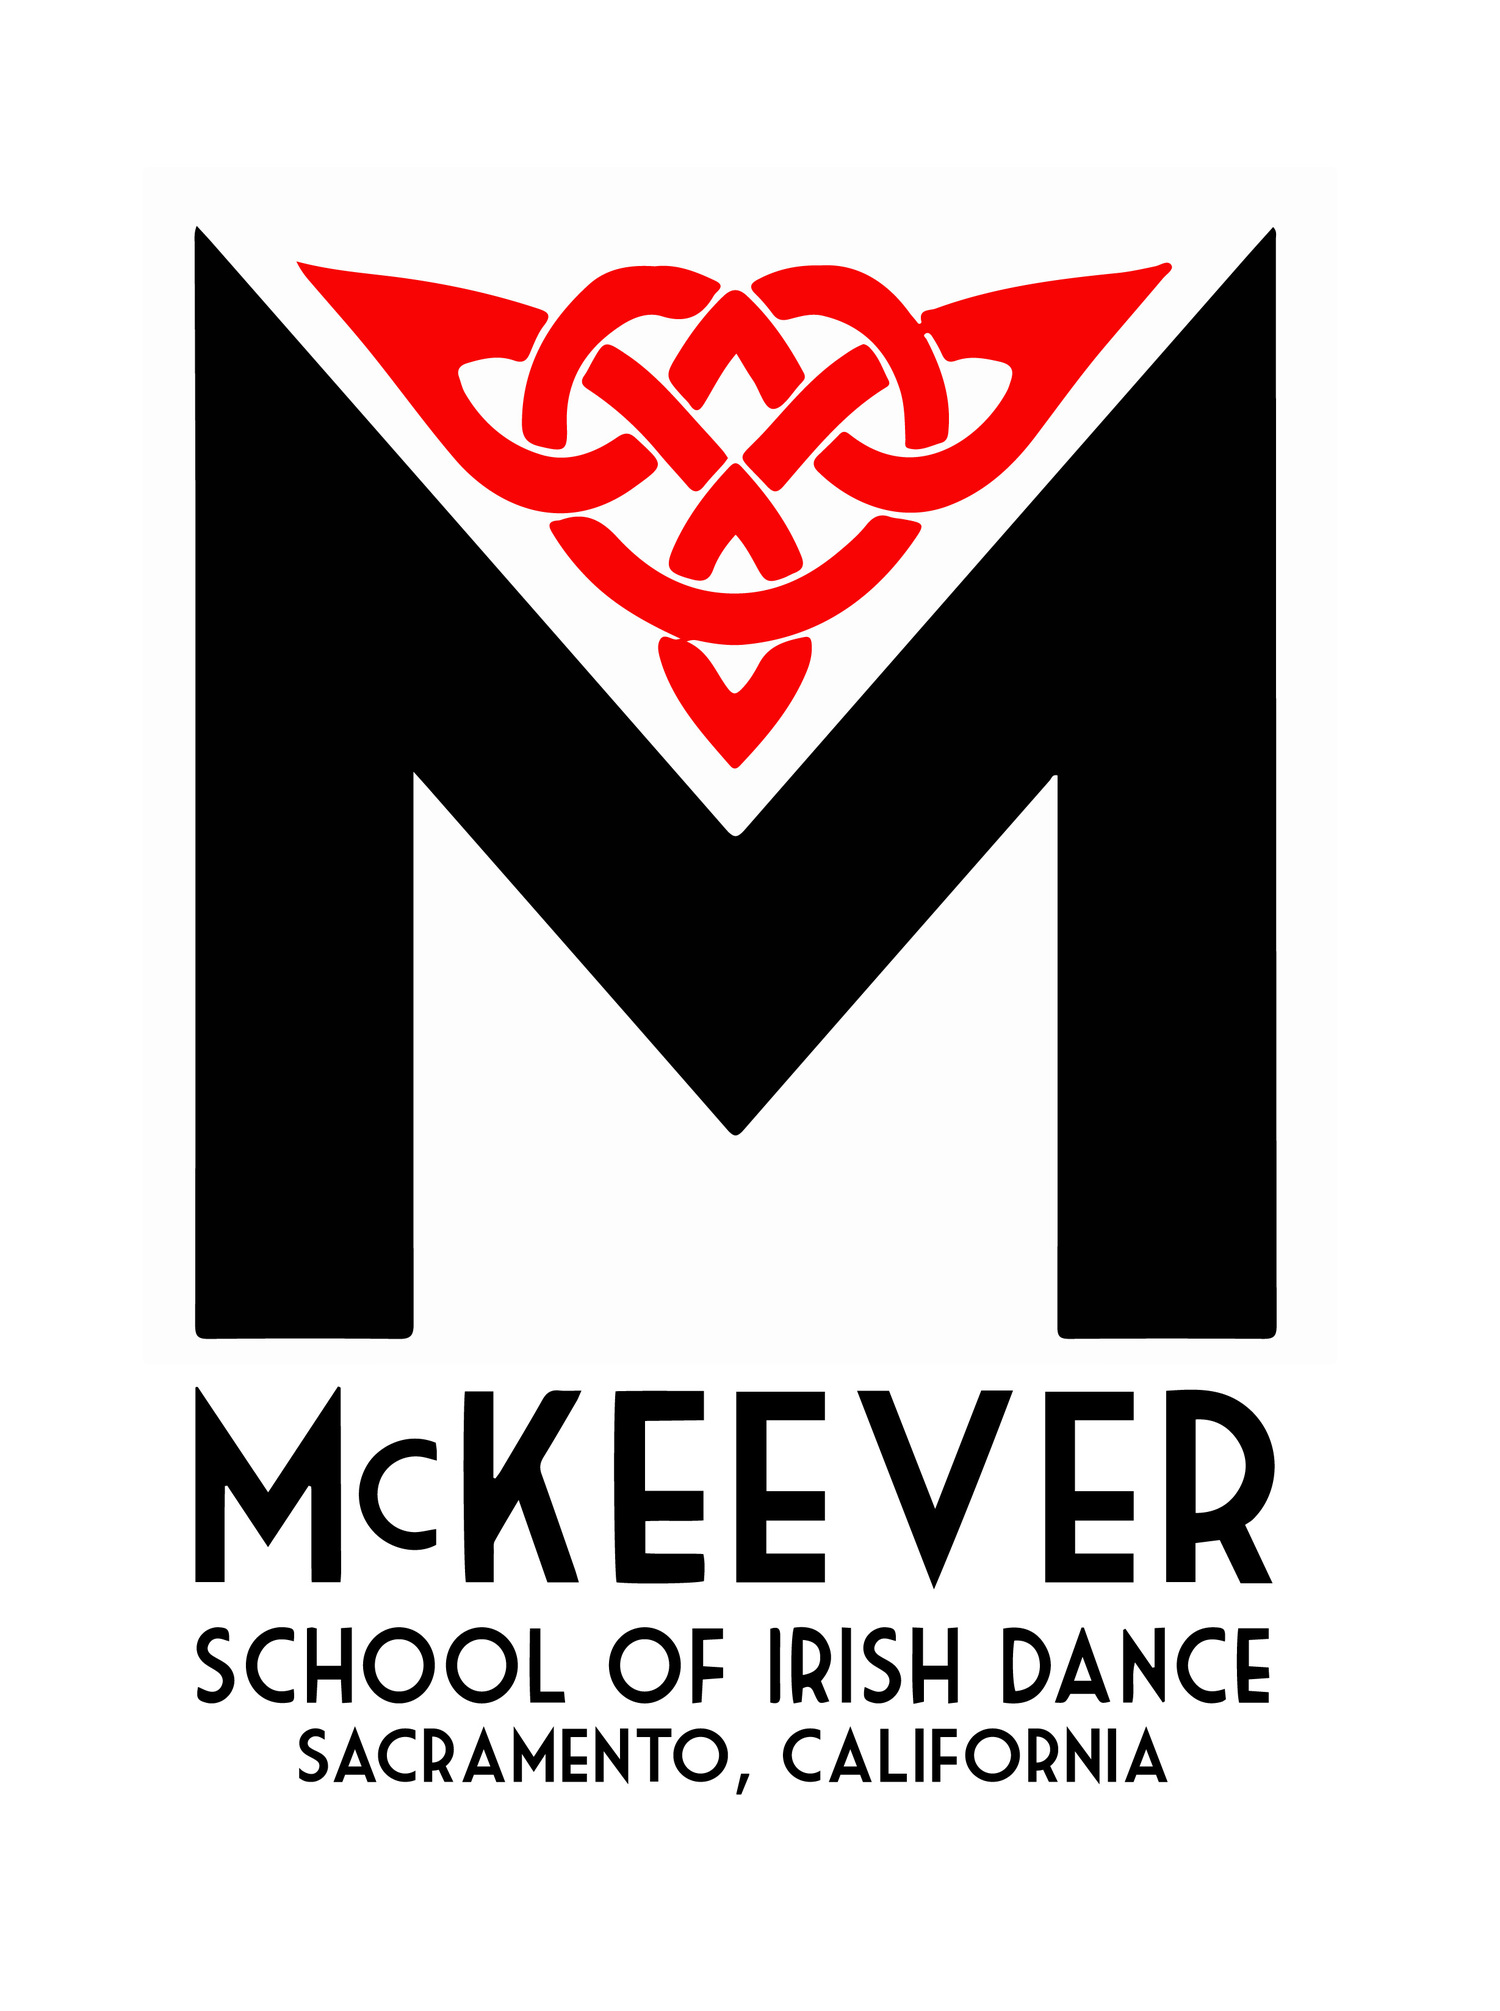 McKeever School of Irish Dance